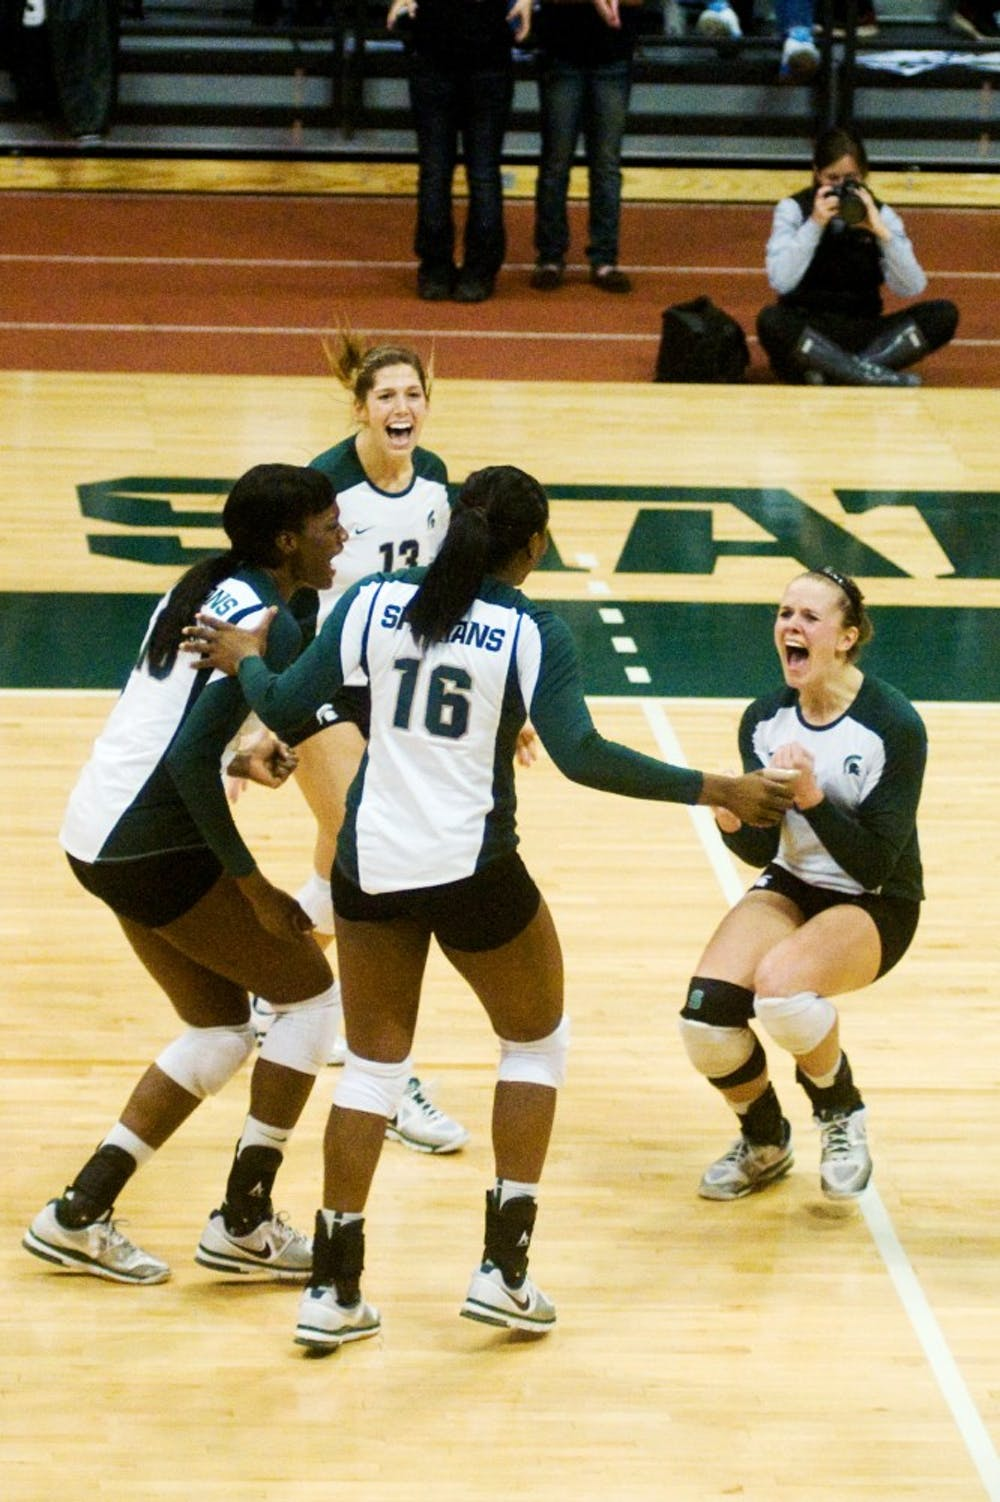 Senior Jenilee Rathje runs over to her team to celebrate a valuable point on Wednesday at Jenison Field House. Each of the four sets played between the Spartans and the Hoosiers were close matches; however, the Spartans brought home a win.